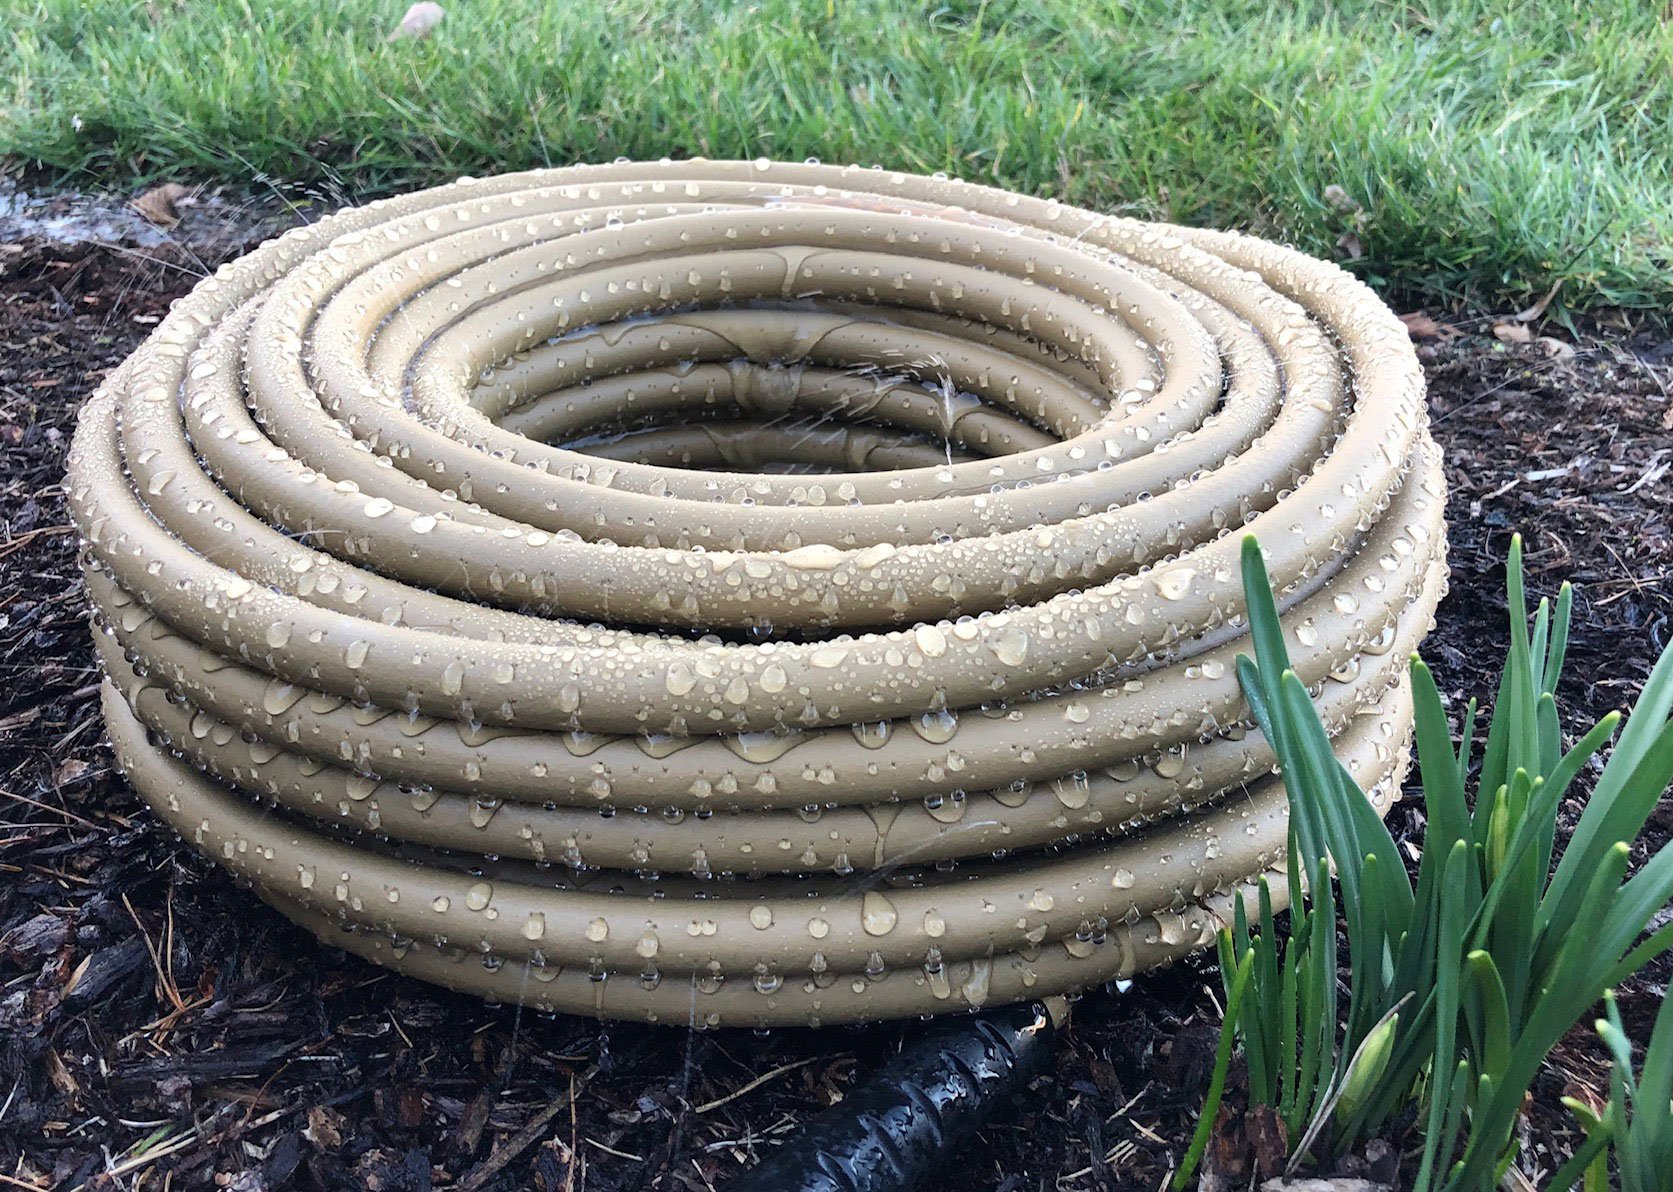 Water Right keeps the environment in mind with this polyurethane hose option.